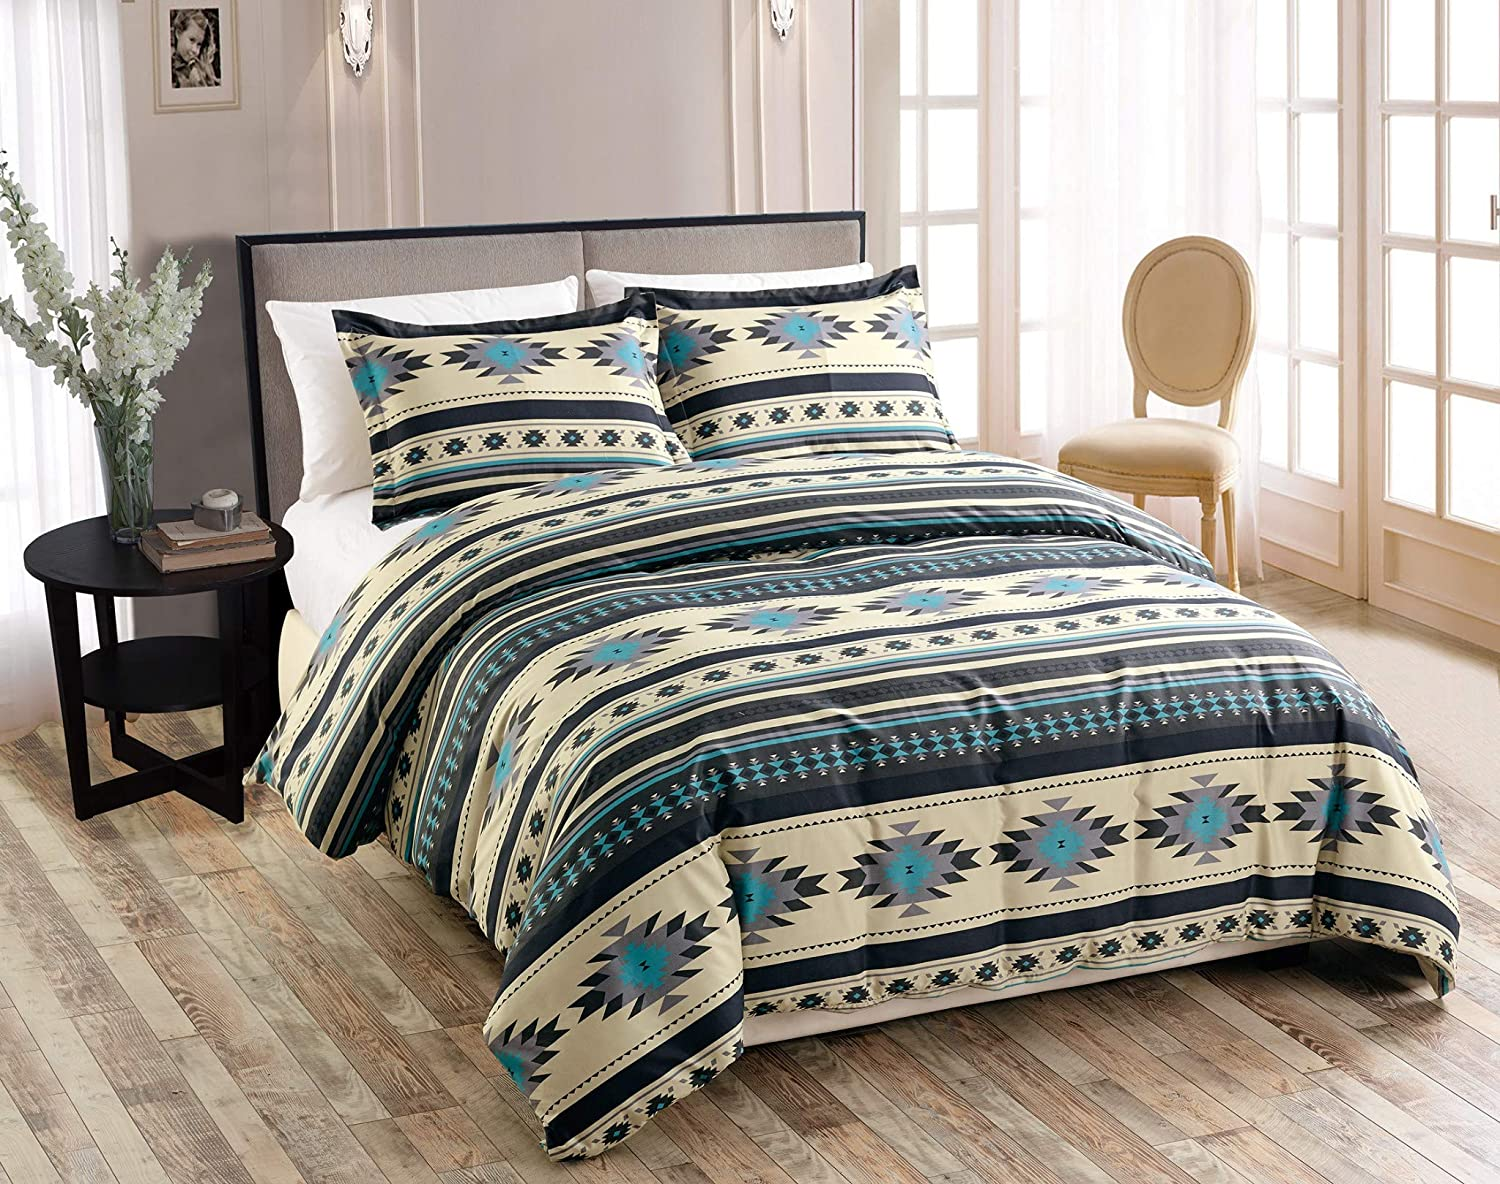 Chezmoi Collection 2-Piece Southwestern Geometric Tribal Multicolor Teal Beige Black Gray Duvet Cover Set - Zipper Closure and Corner Ties, Twin Size